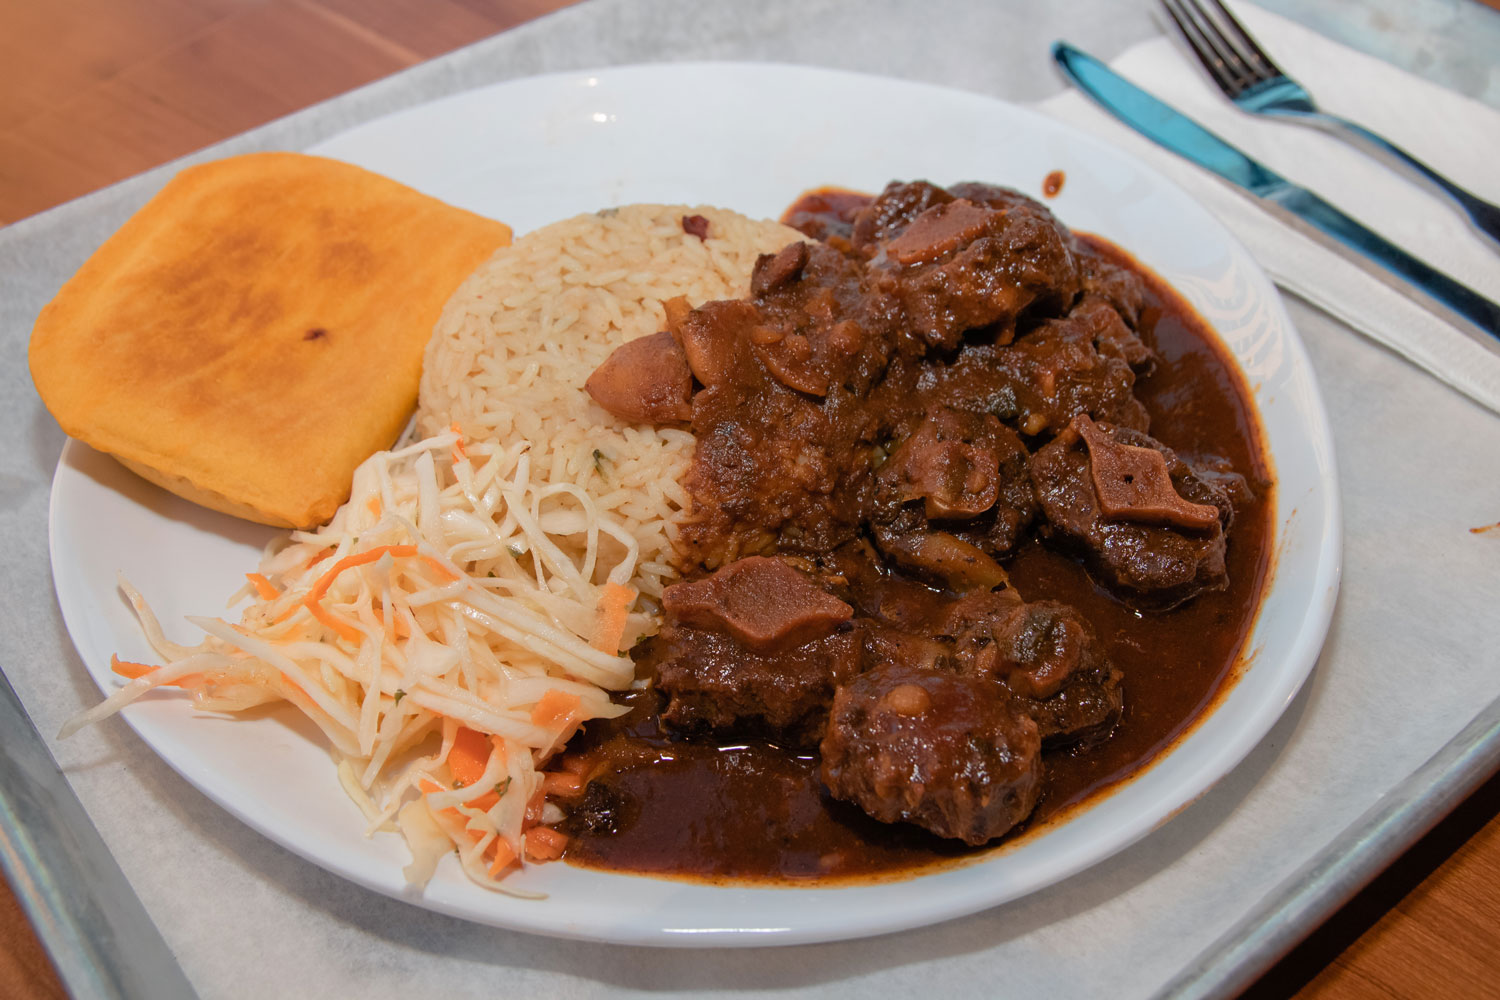 A plate of hearty, delicious Jamaican food.